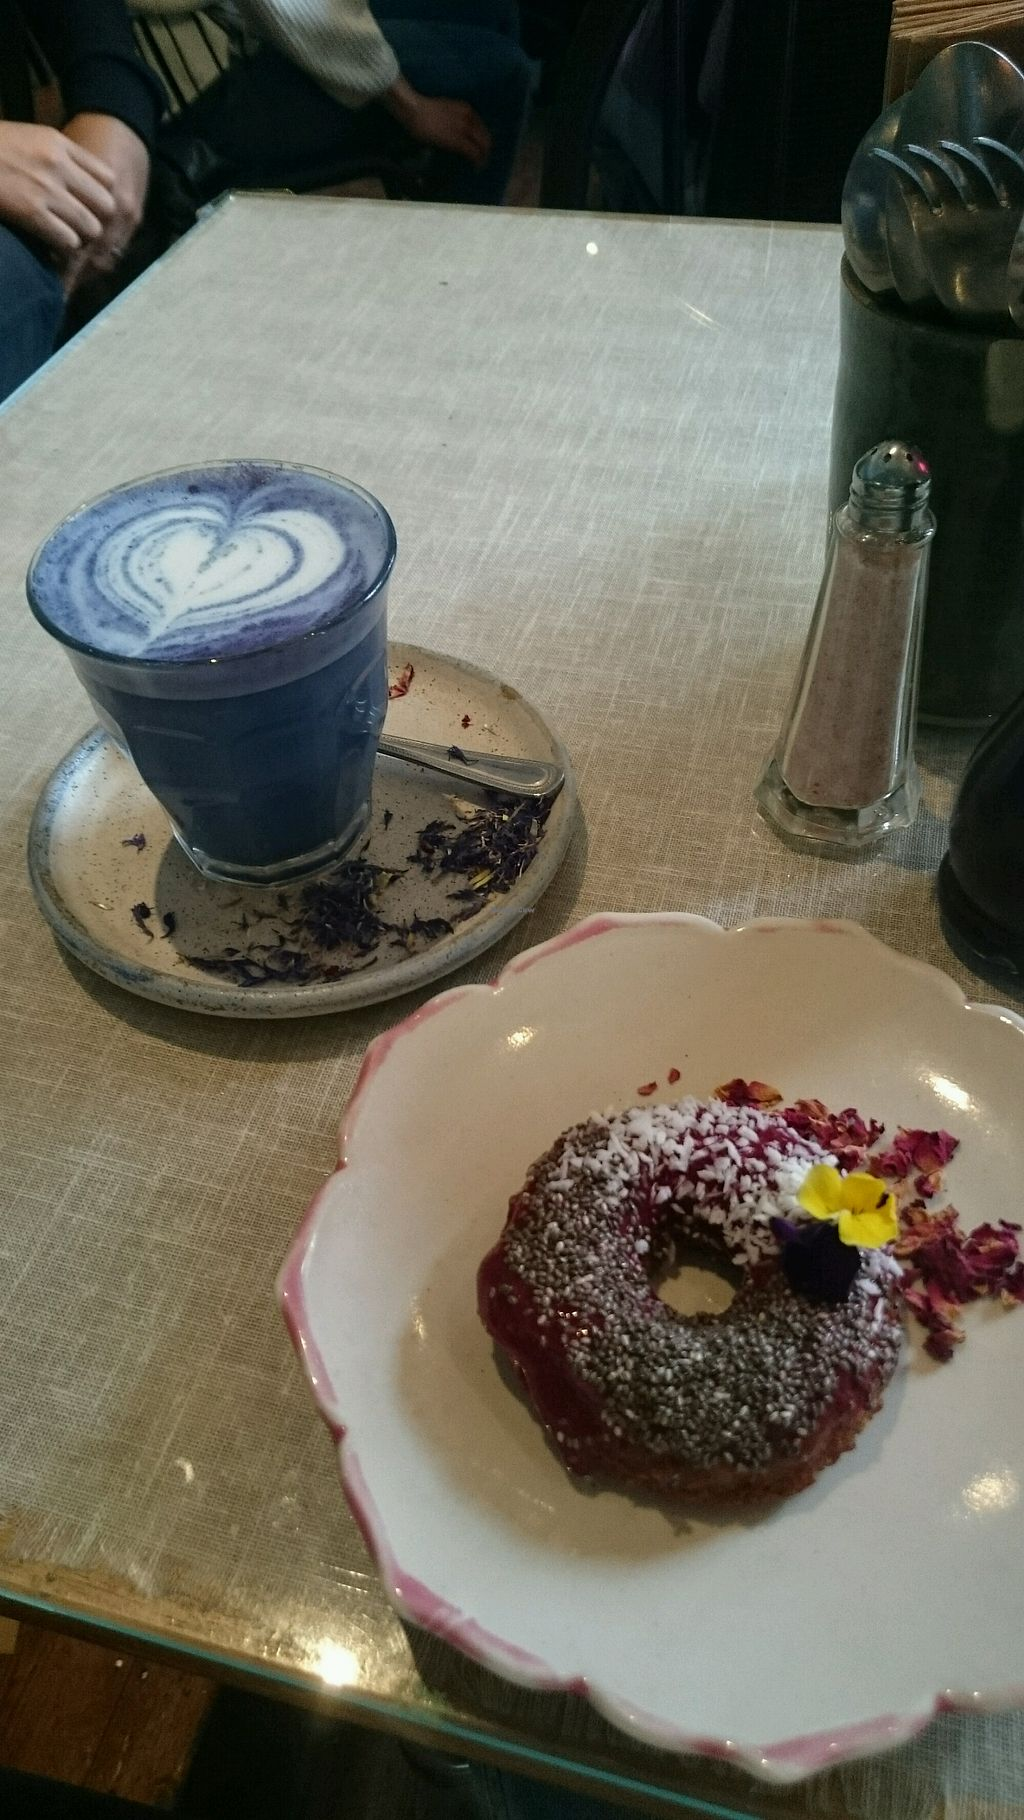 """Photo of Farm Girl Cafe  by <a href=""""/members/profile/Layra"""">Layra</a> <br/>vegan donut and butterfly matcha <br/> May 17, 2018  - <a href='/contact/abuse/image/96921/400873'>Report</a>"""